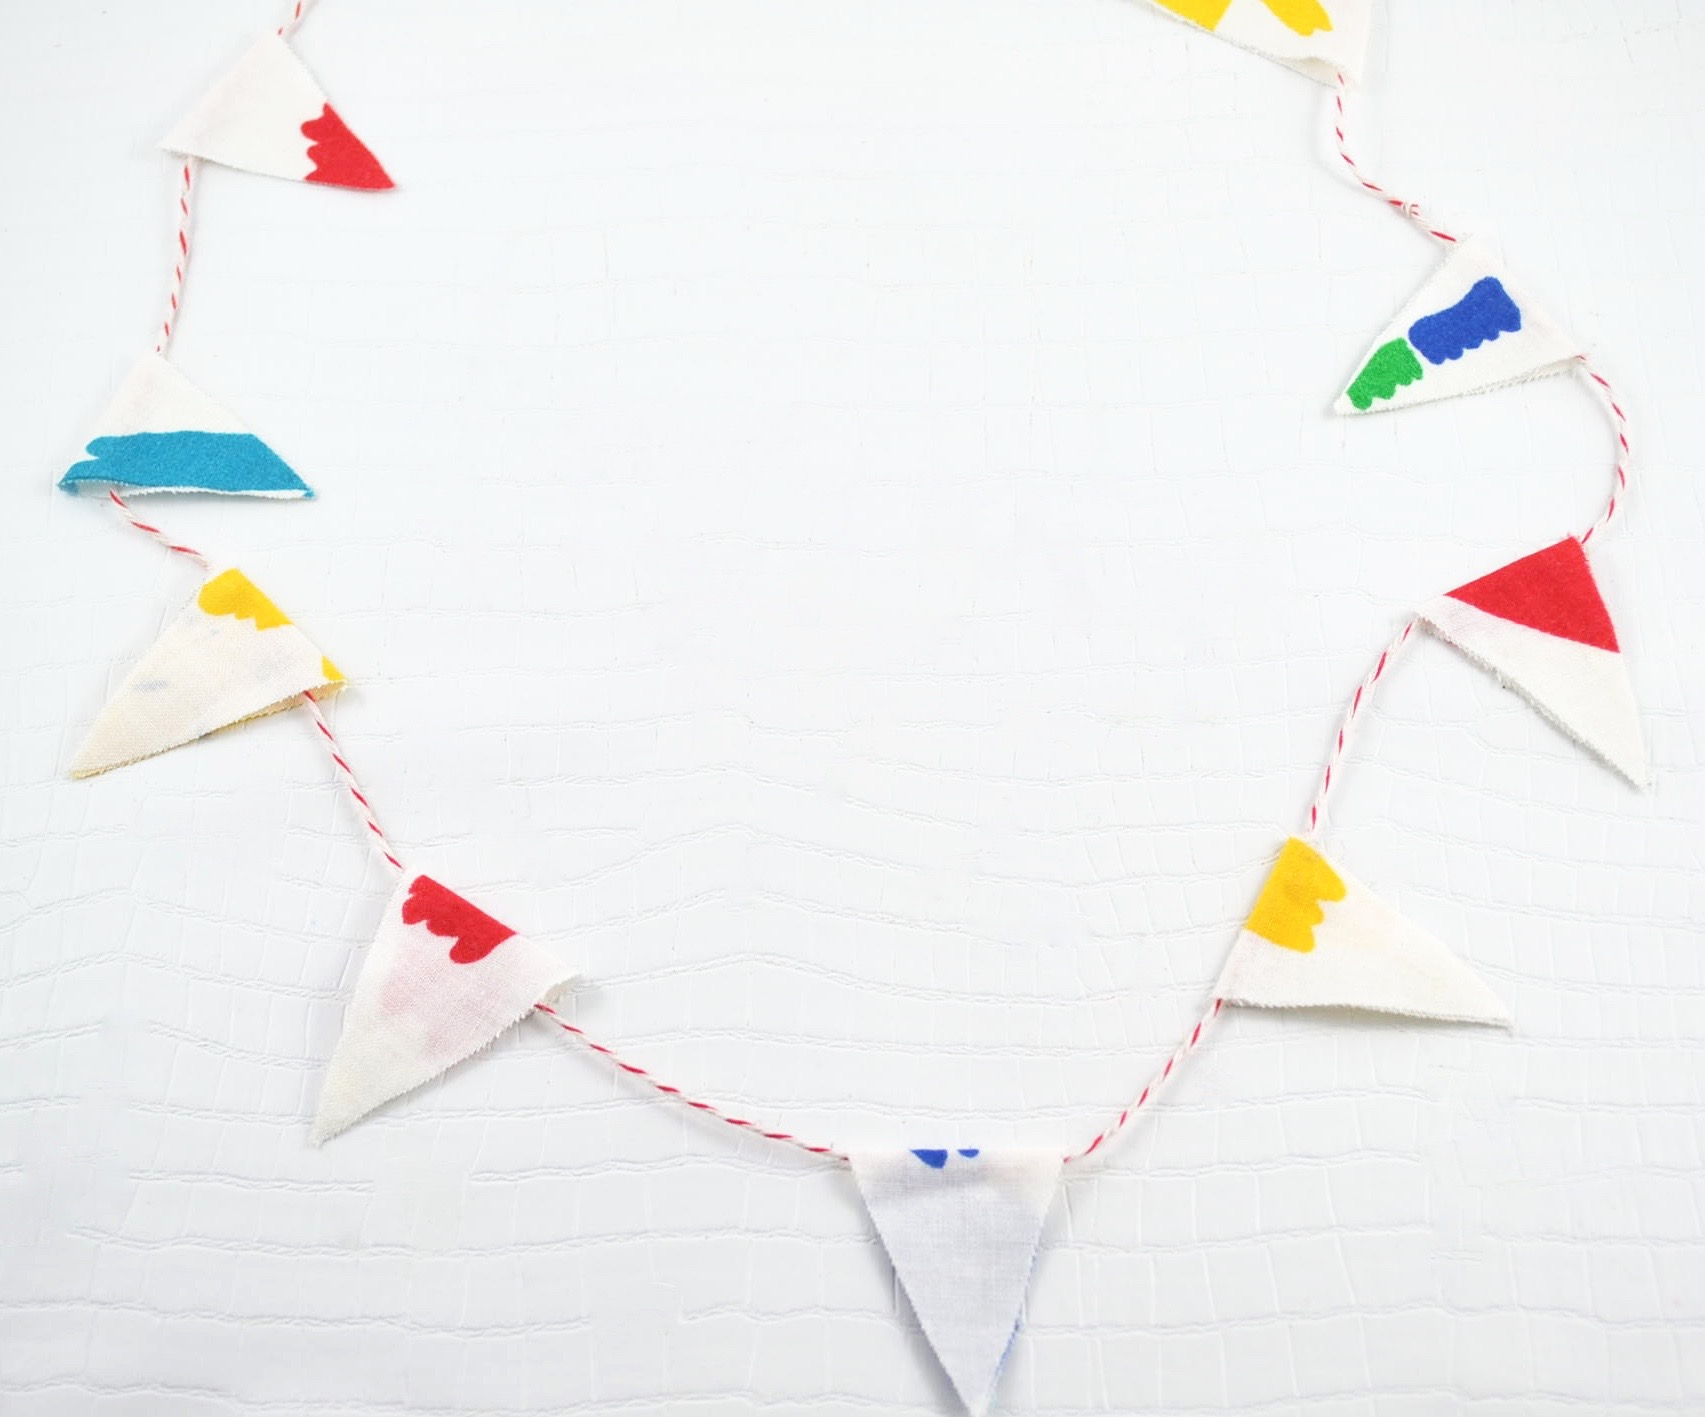 Homemade Bunting using material and gluing it closed with baker's twine. Photo Credit: Michelle Somers